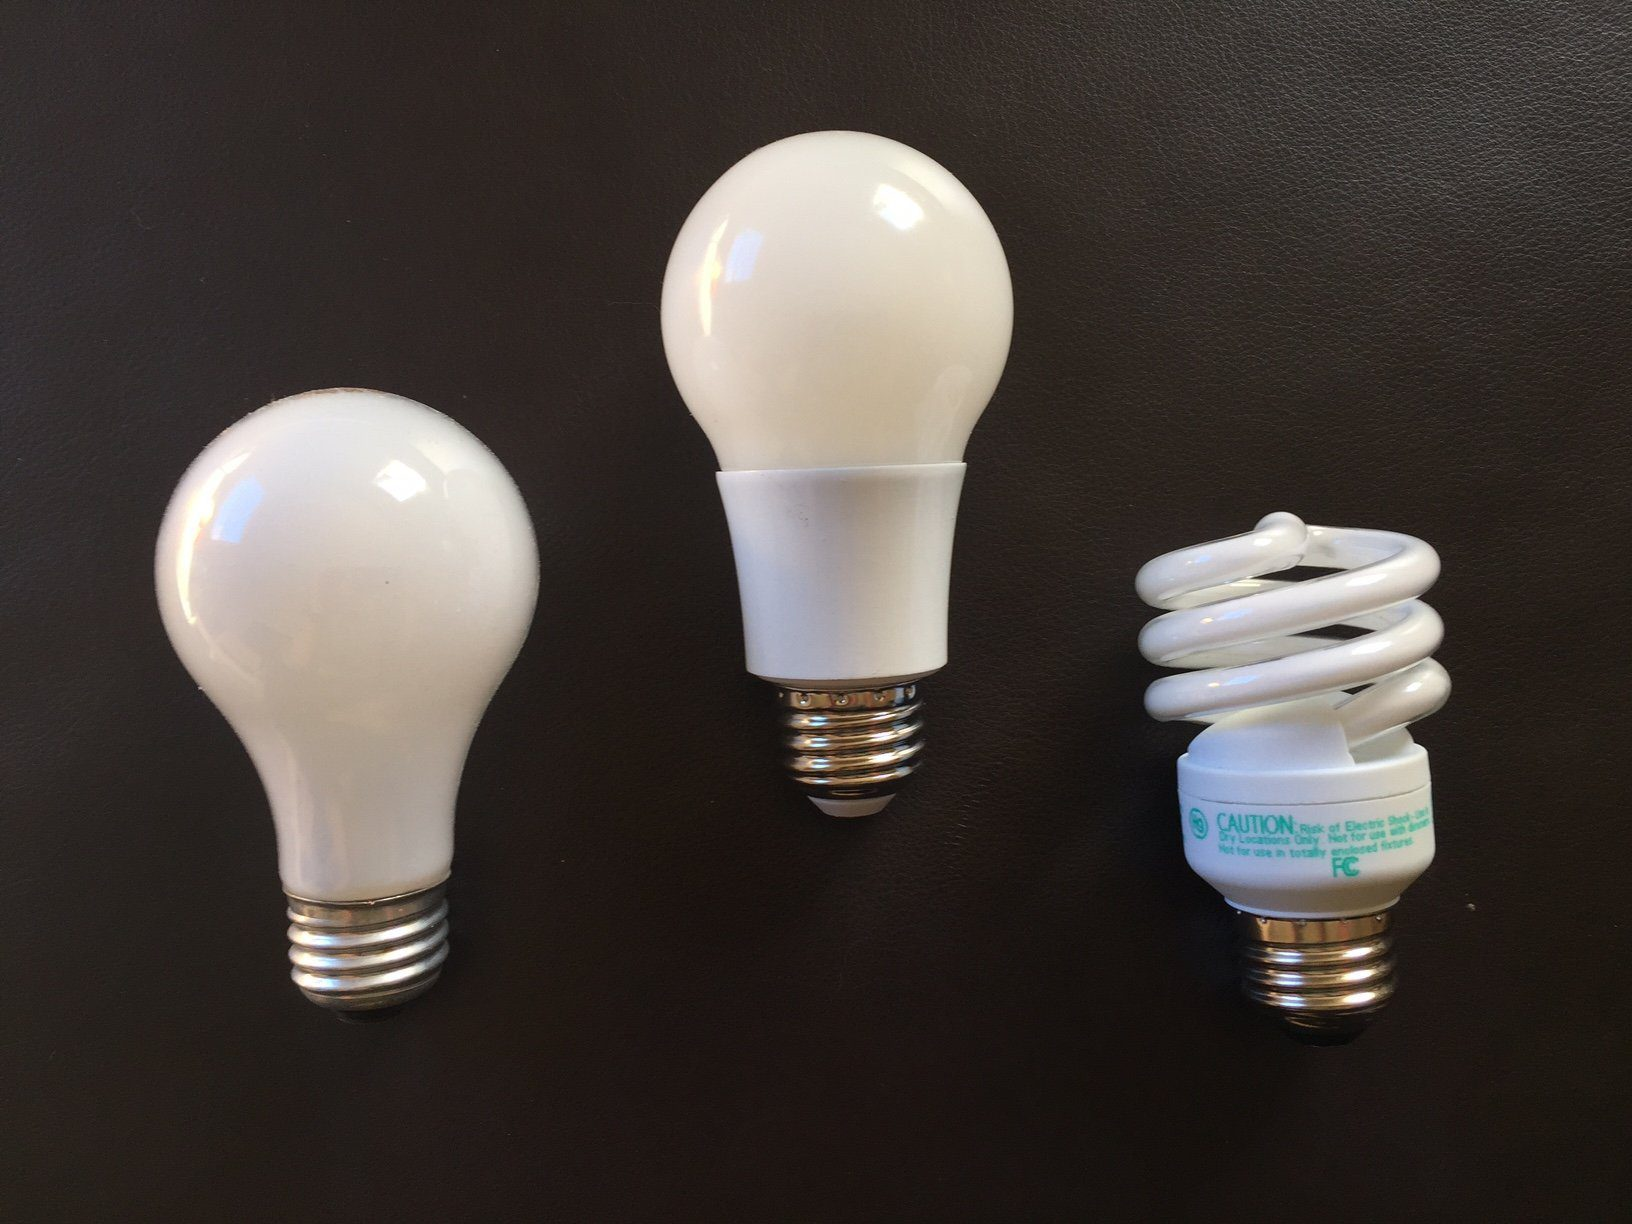 Buy Lightbulbs A Primer On The New Law That Will Banish Incandescent Bulbs In